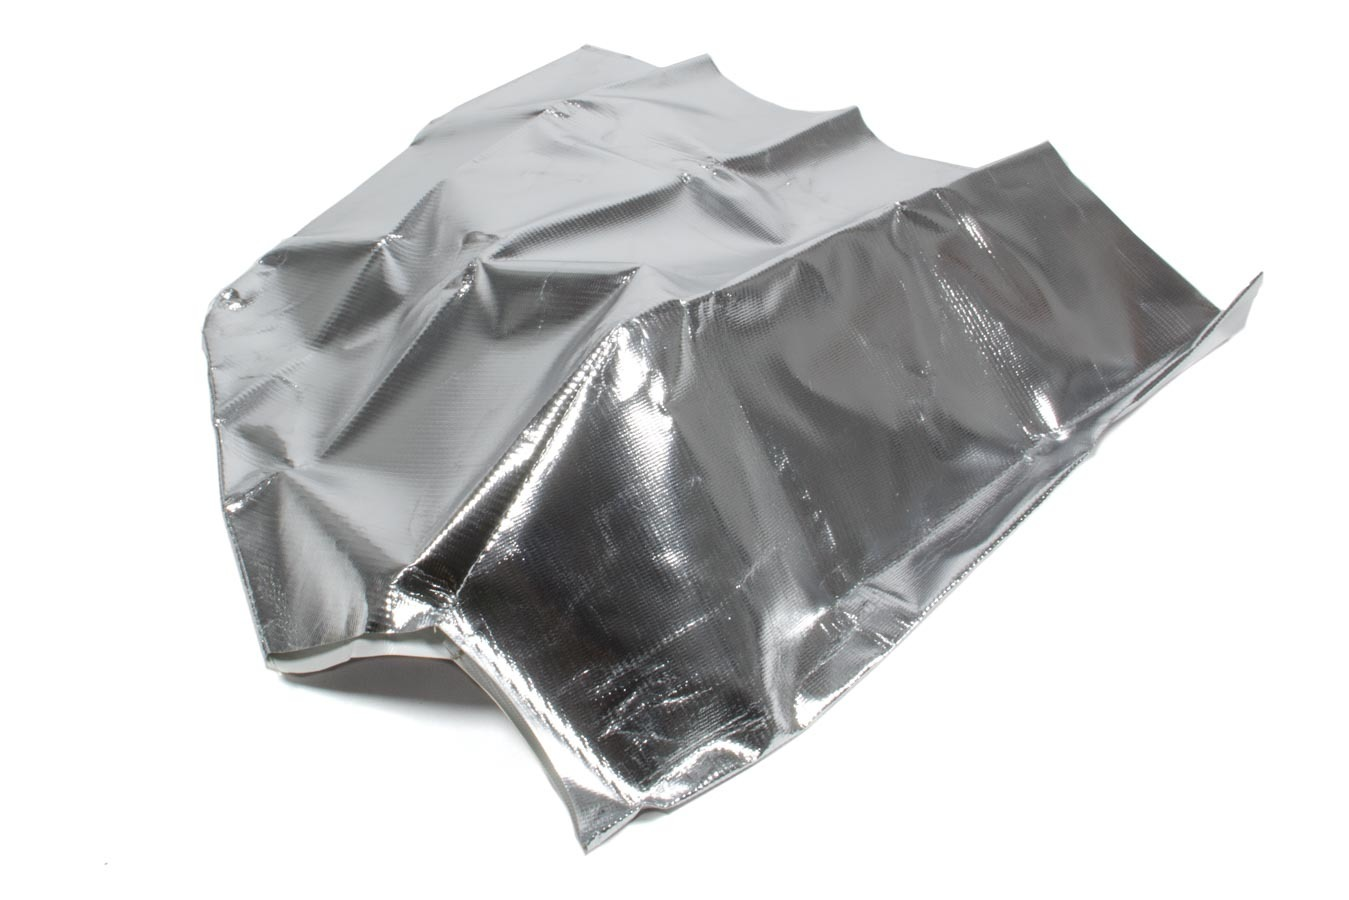 Round Fuel Jug Cover ref lects heat reduces fuel